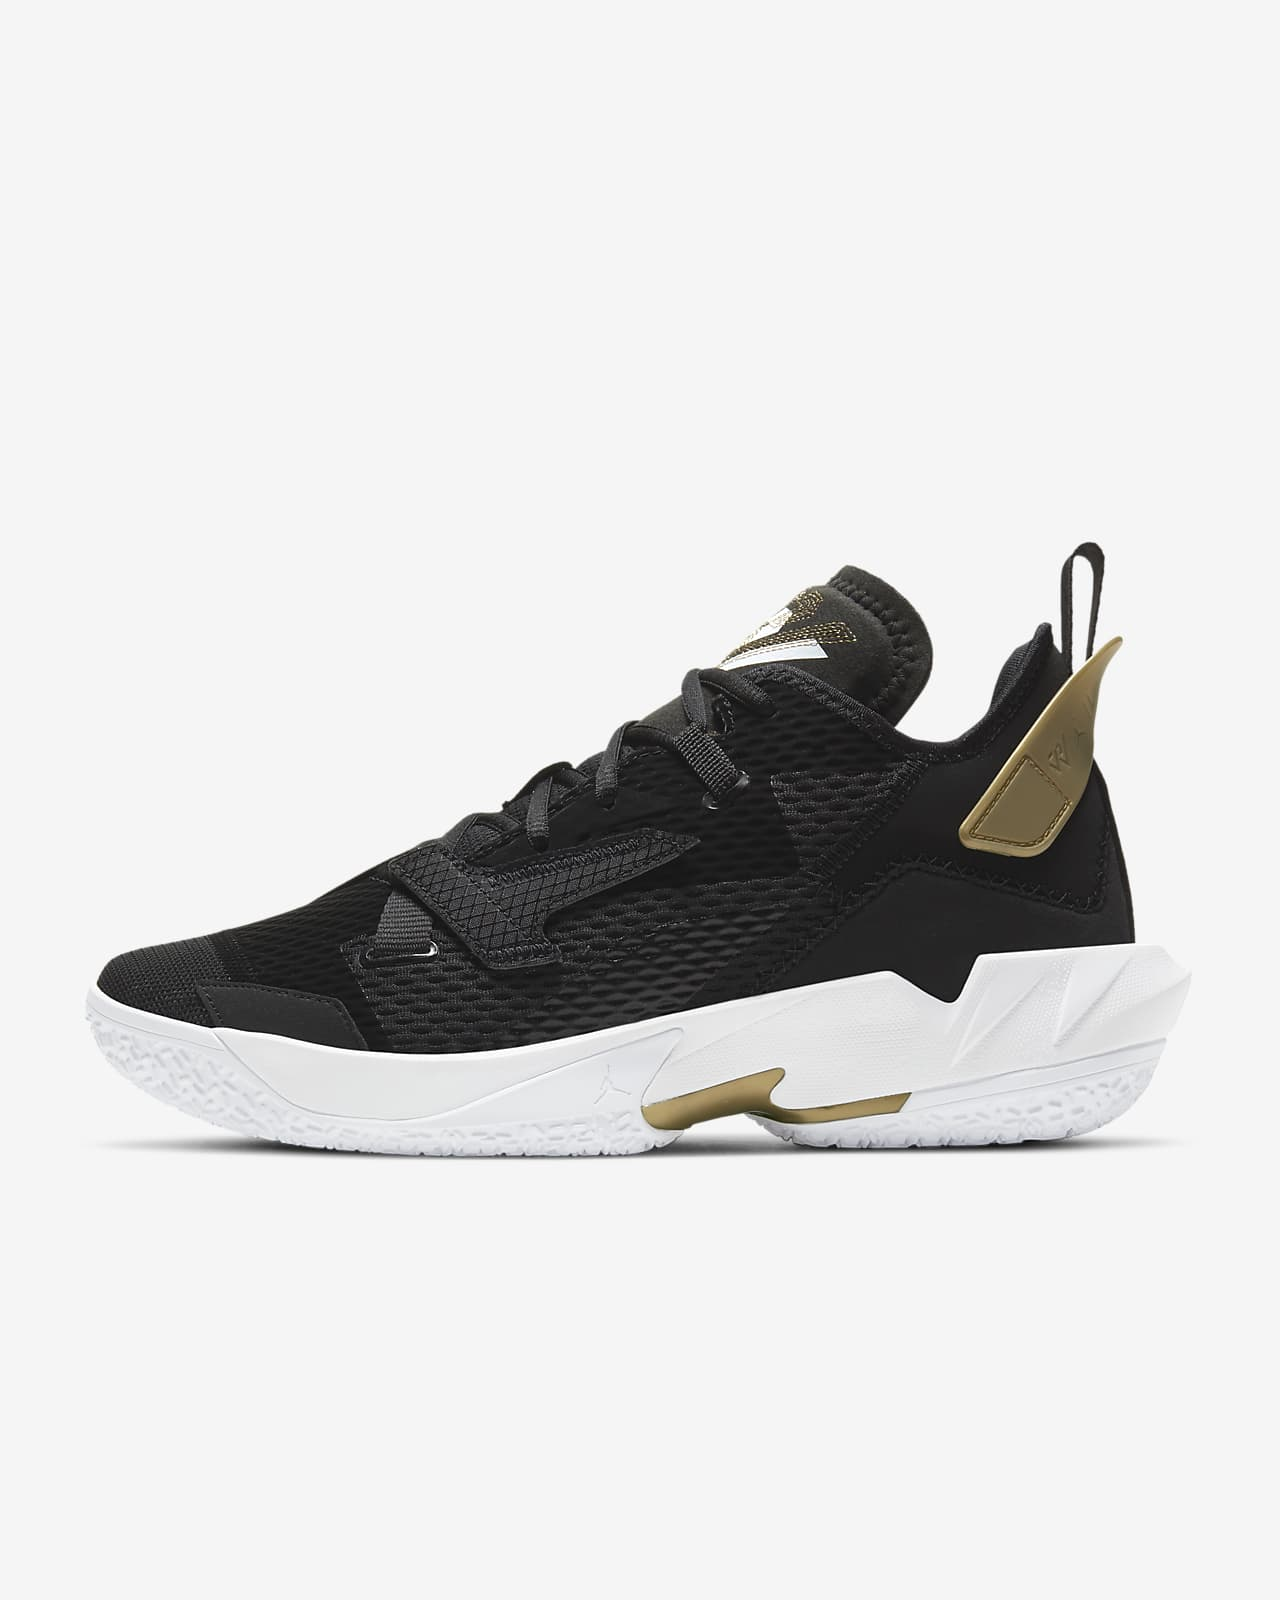 Jordan Why Not? Zer0.4 'Family' PF Basketball Shoe